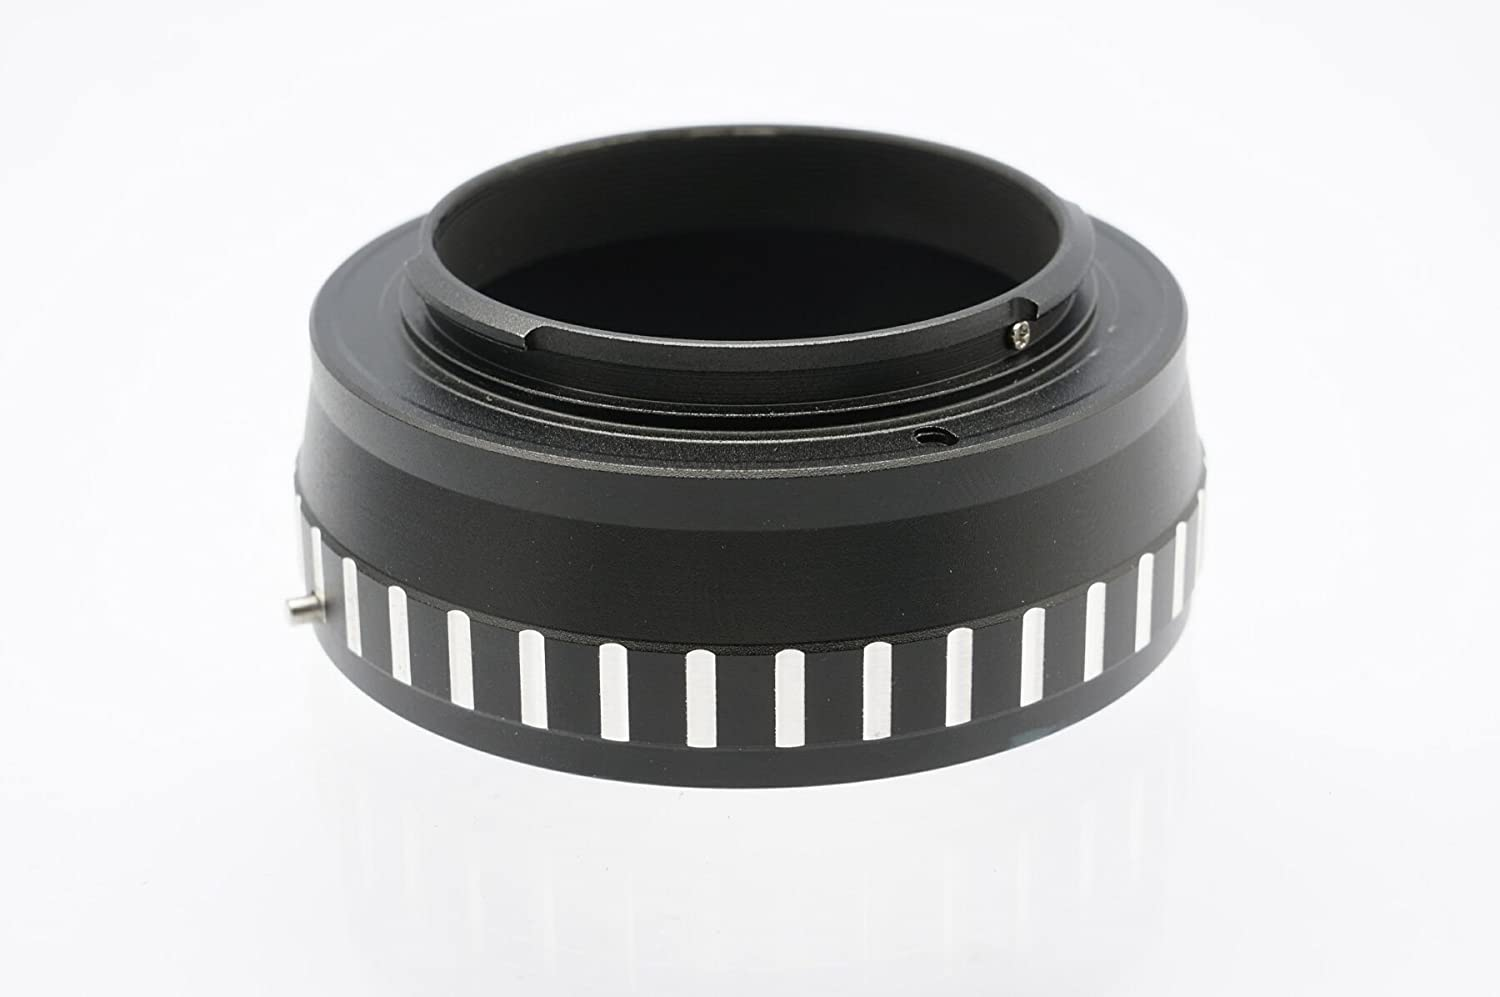 Gadget Place Konica AR Lens Adapter for Sony Alpha a6500 a6300 a5100 7R II 7S II